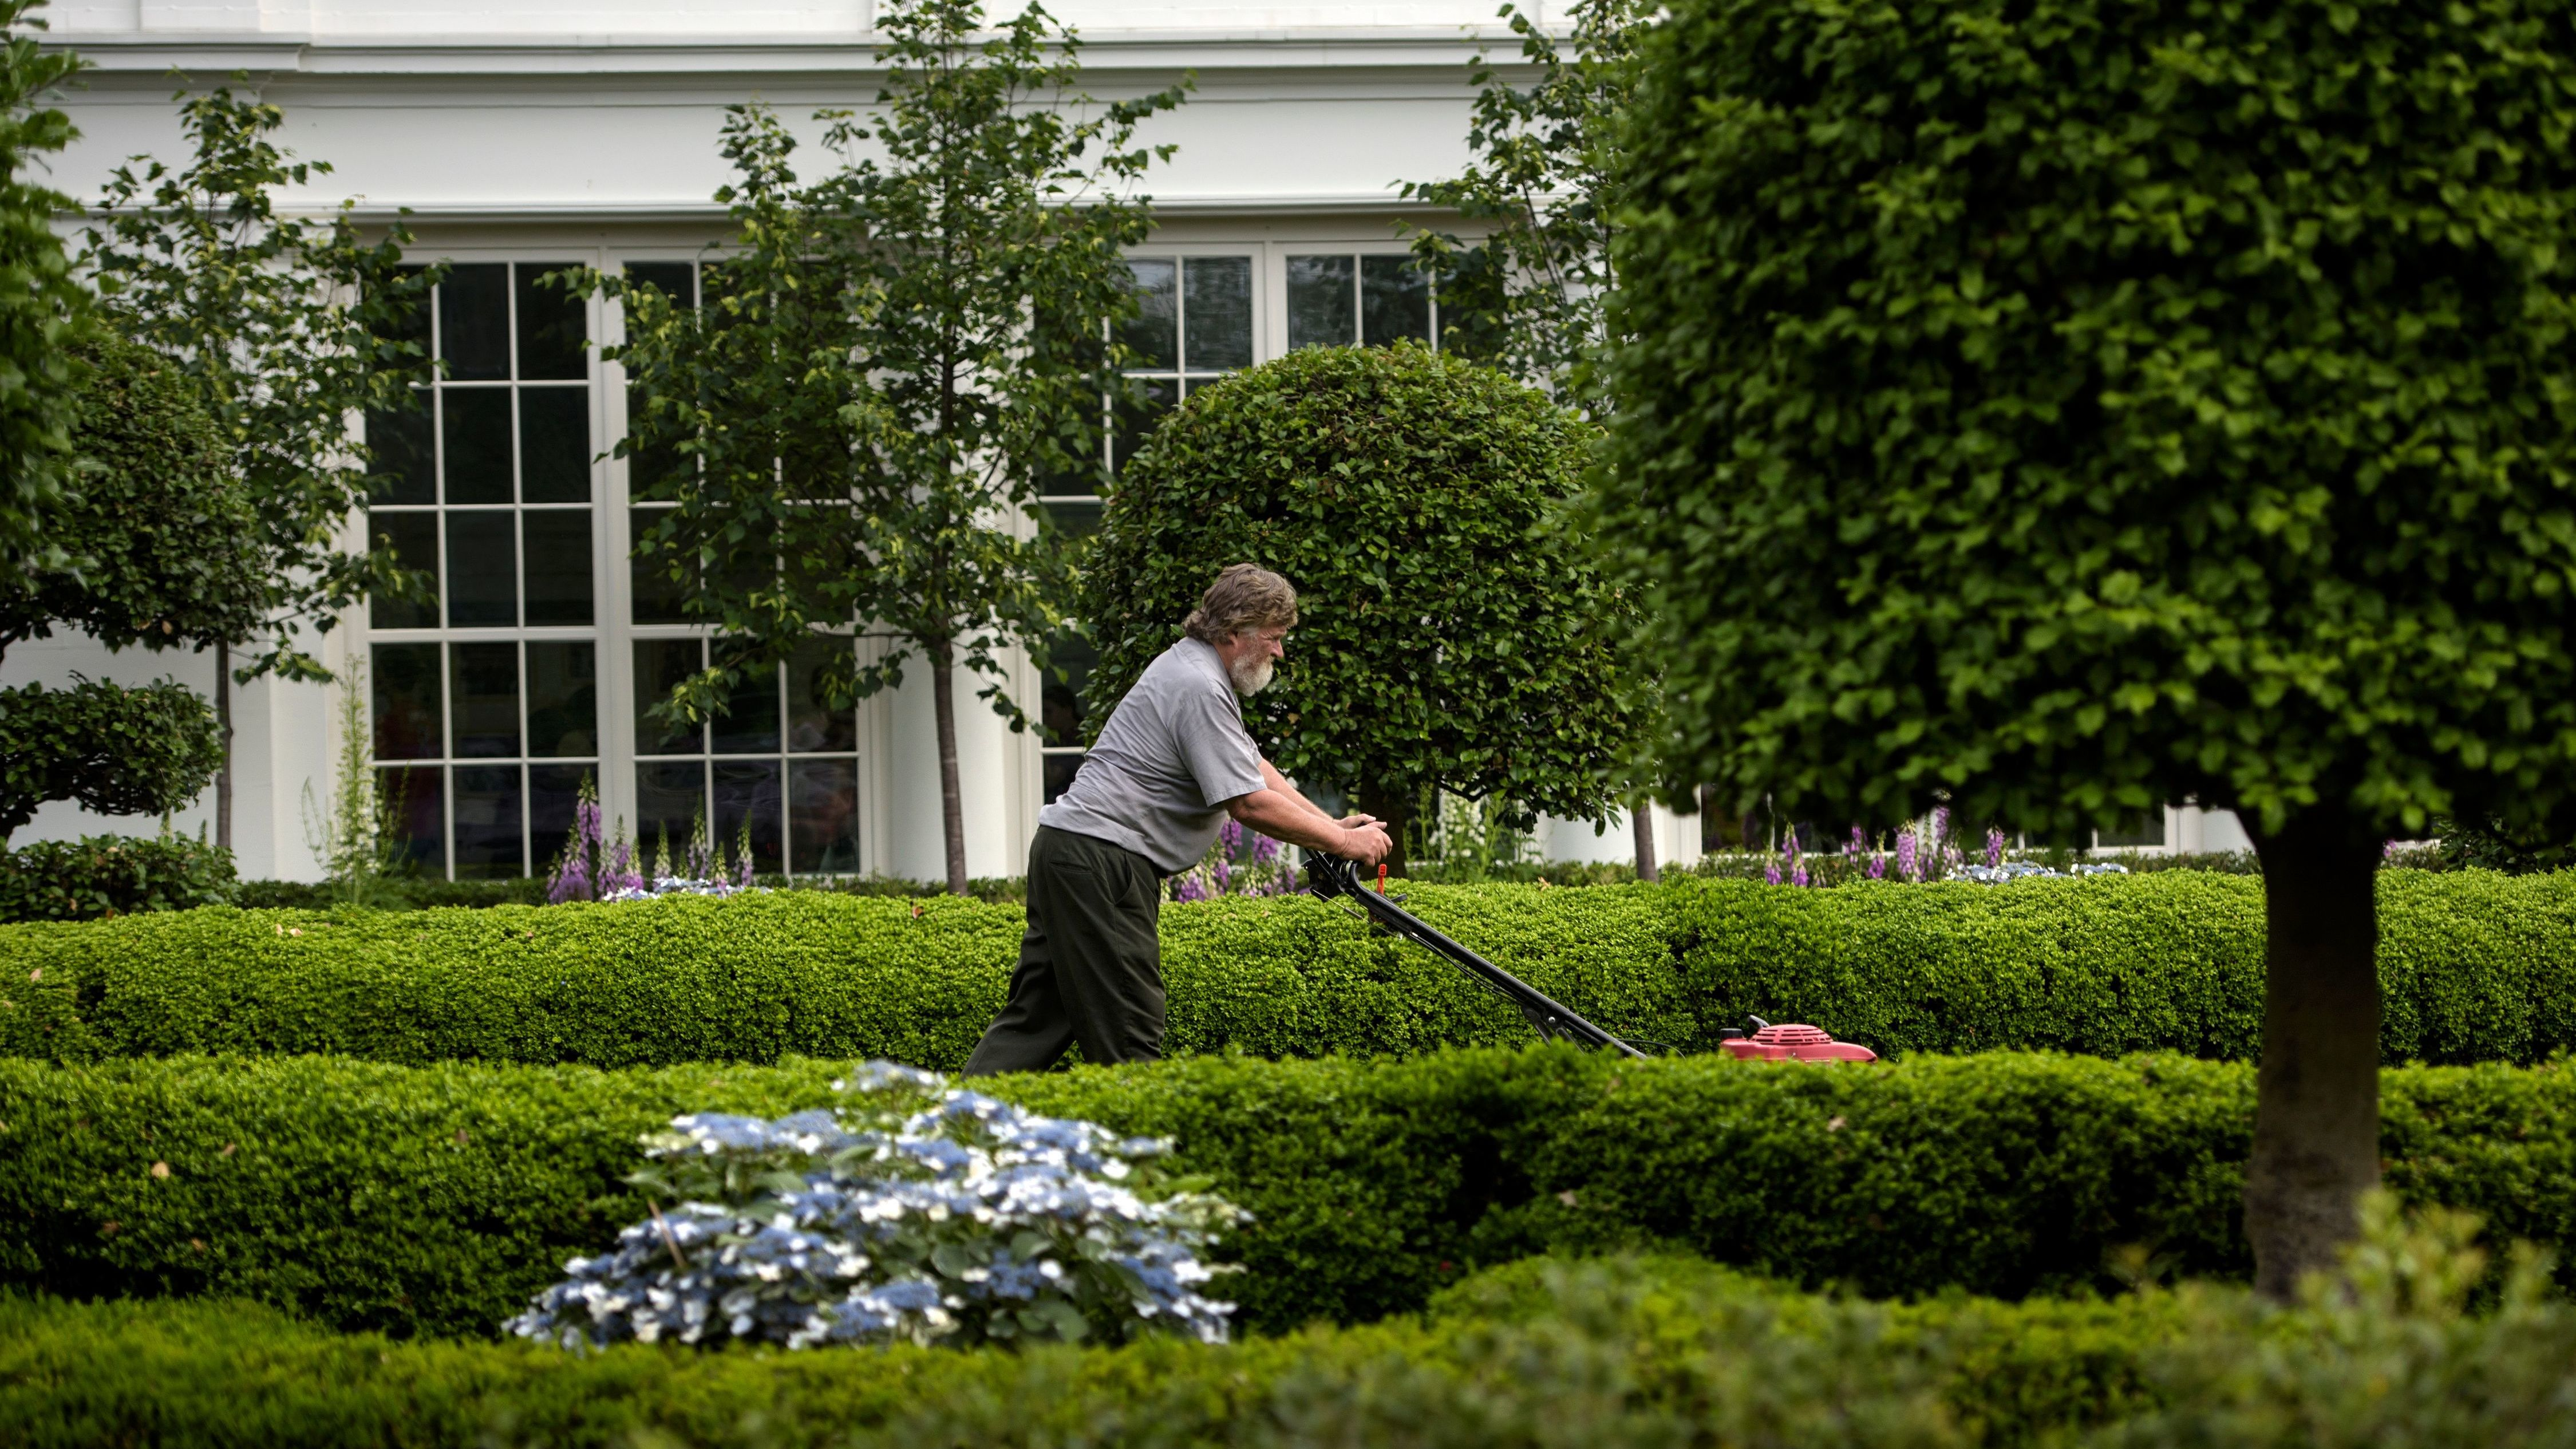 10-year-old offers to mow White House lawn - for free